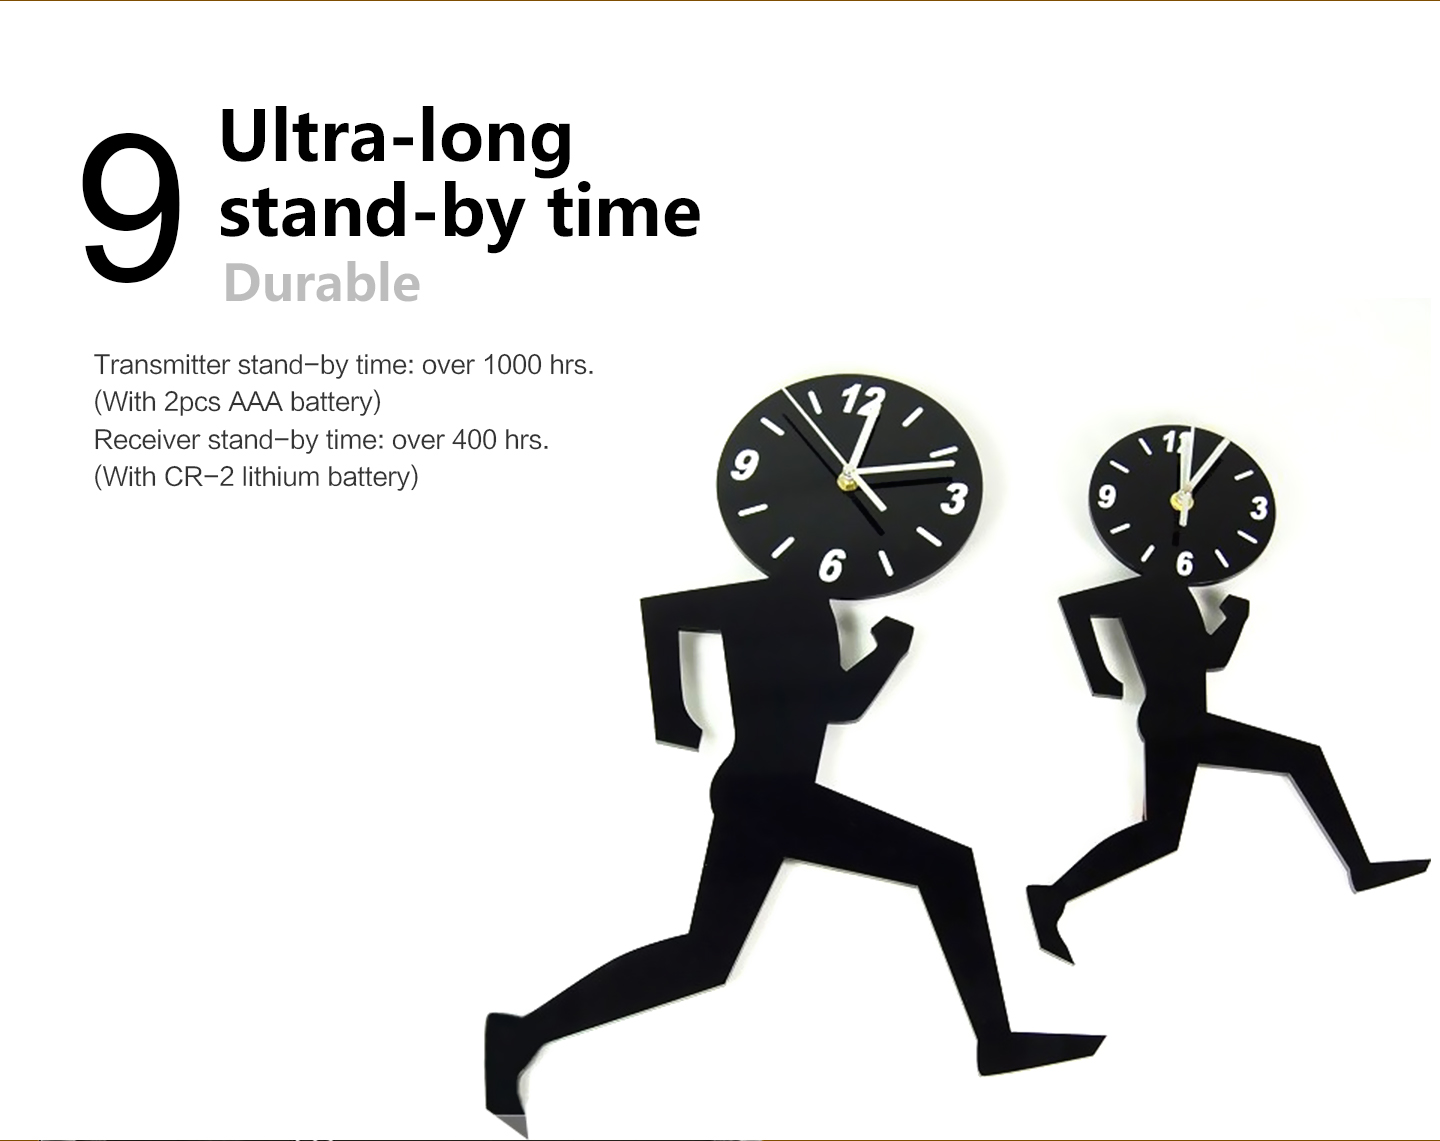 Ultra-long stand-by time